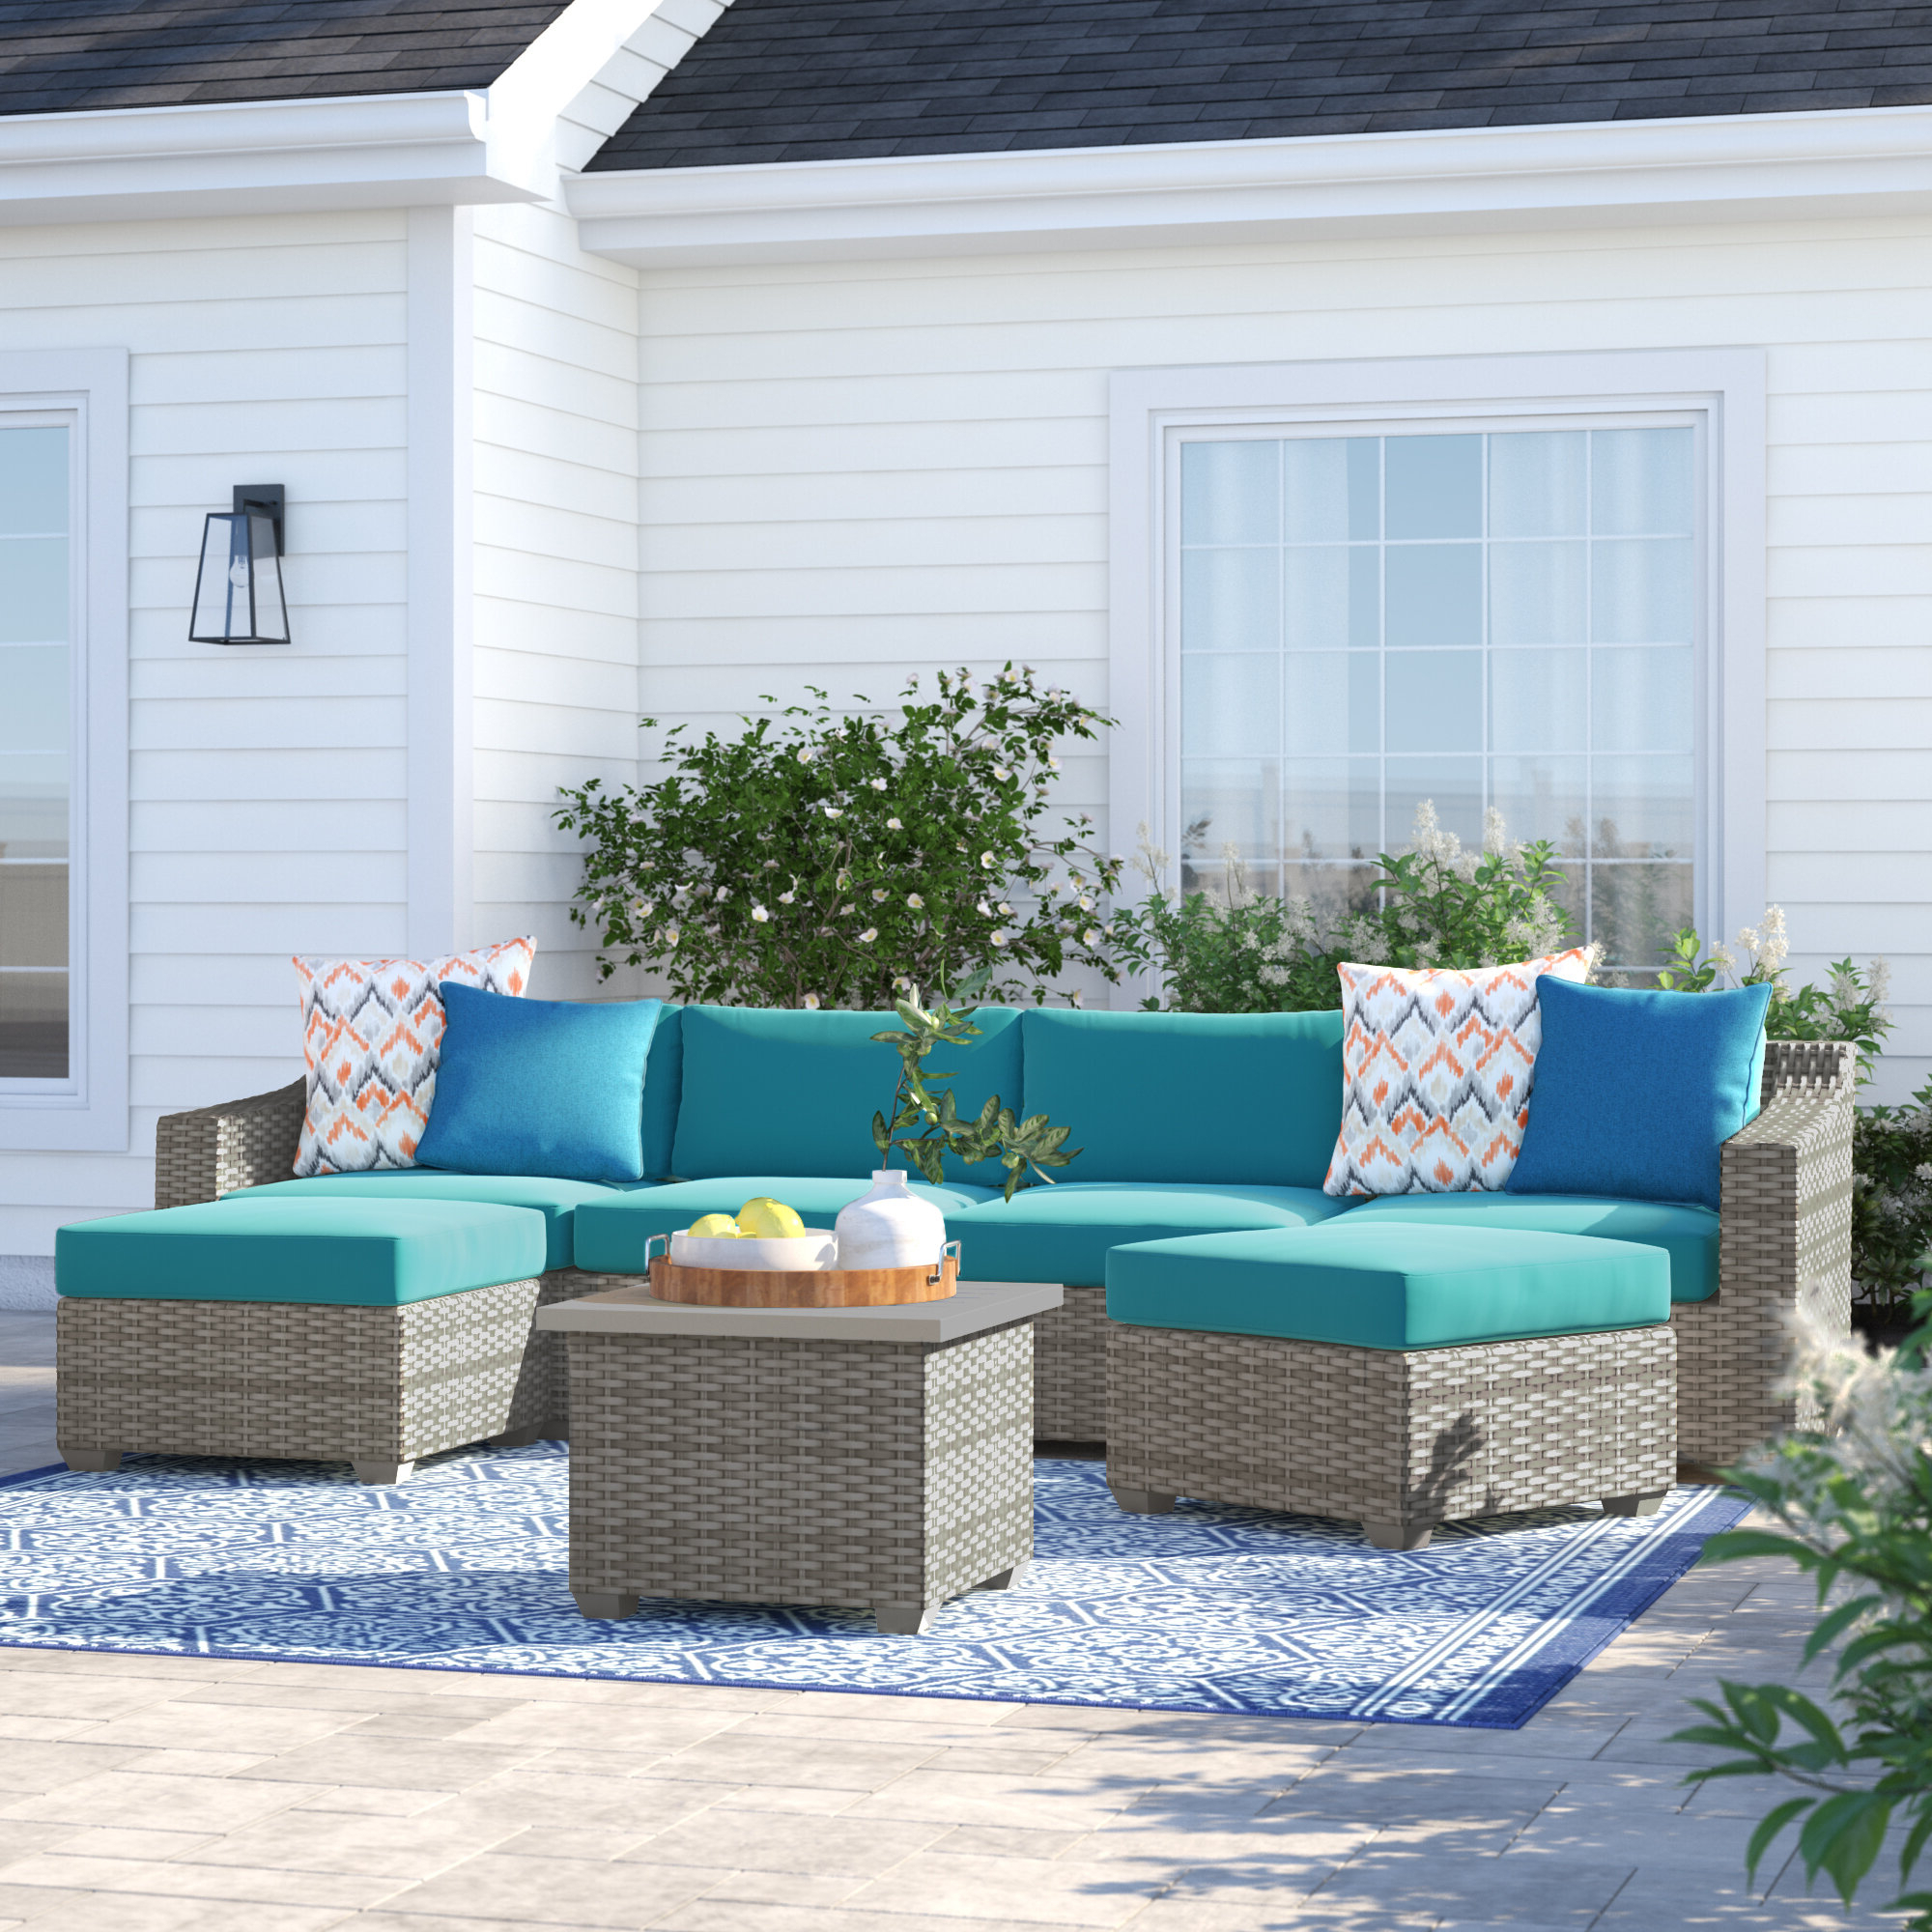 Most Recently Released Falmouth Patio Daybeds With Cushions In Falmouth 7 Piece Sectional Seating Group With Cushions (View 18 of 20)